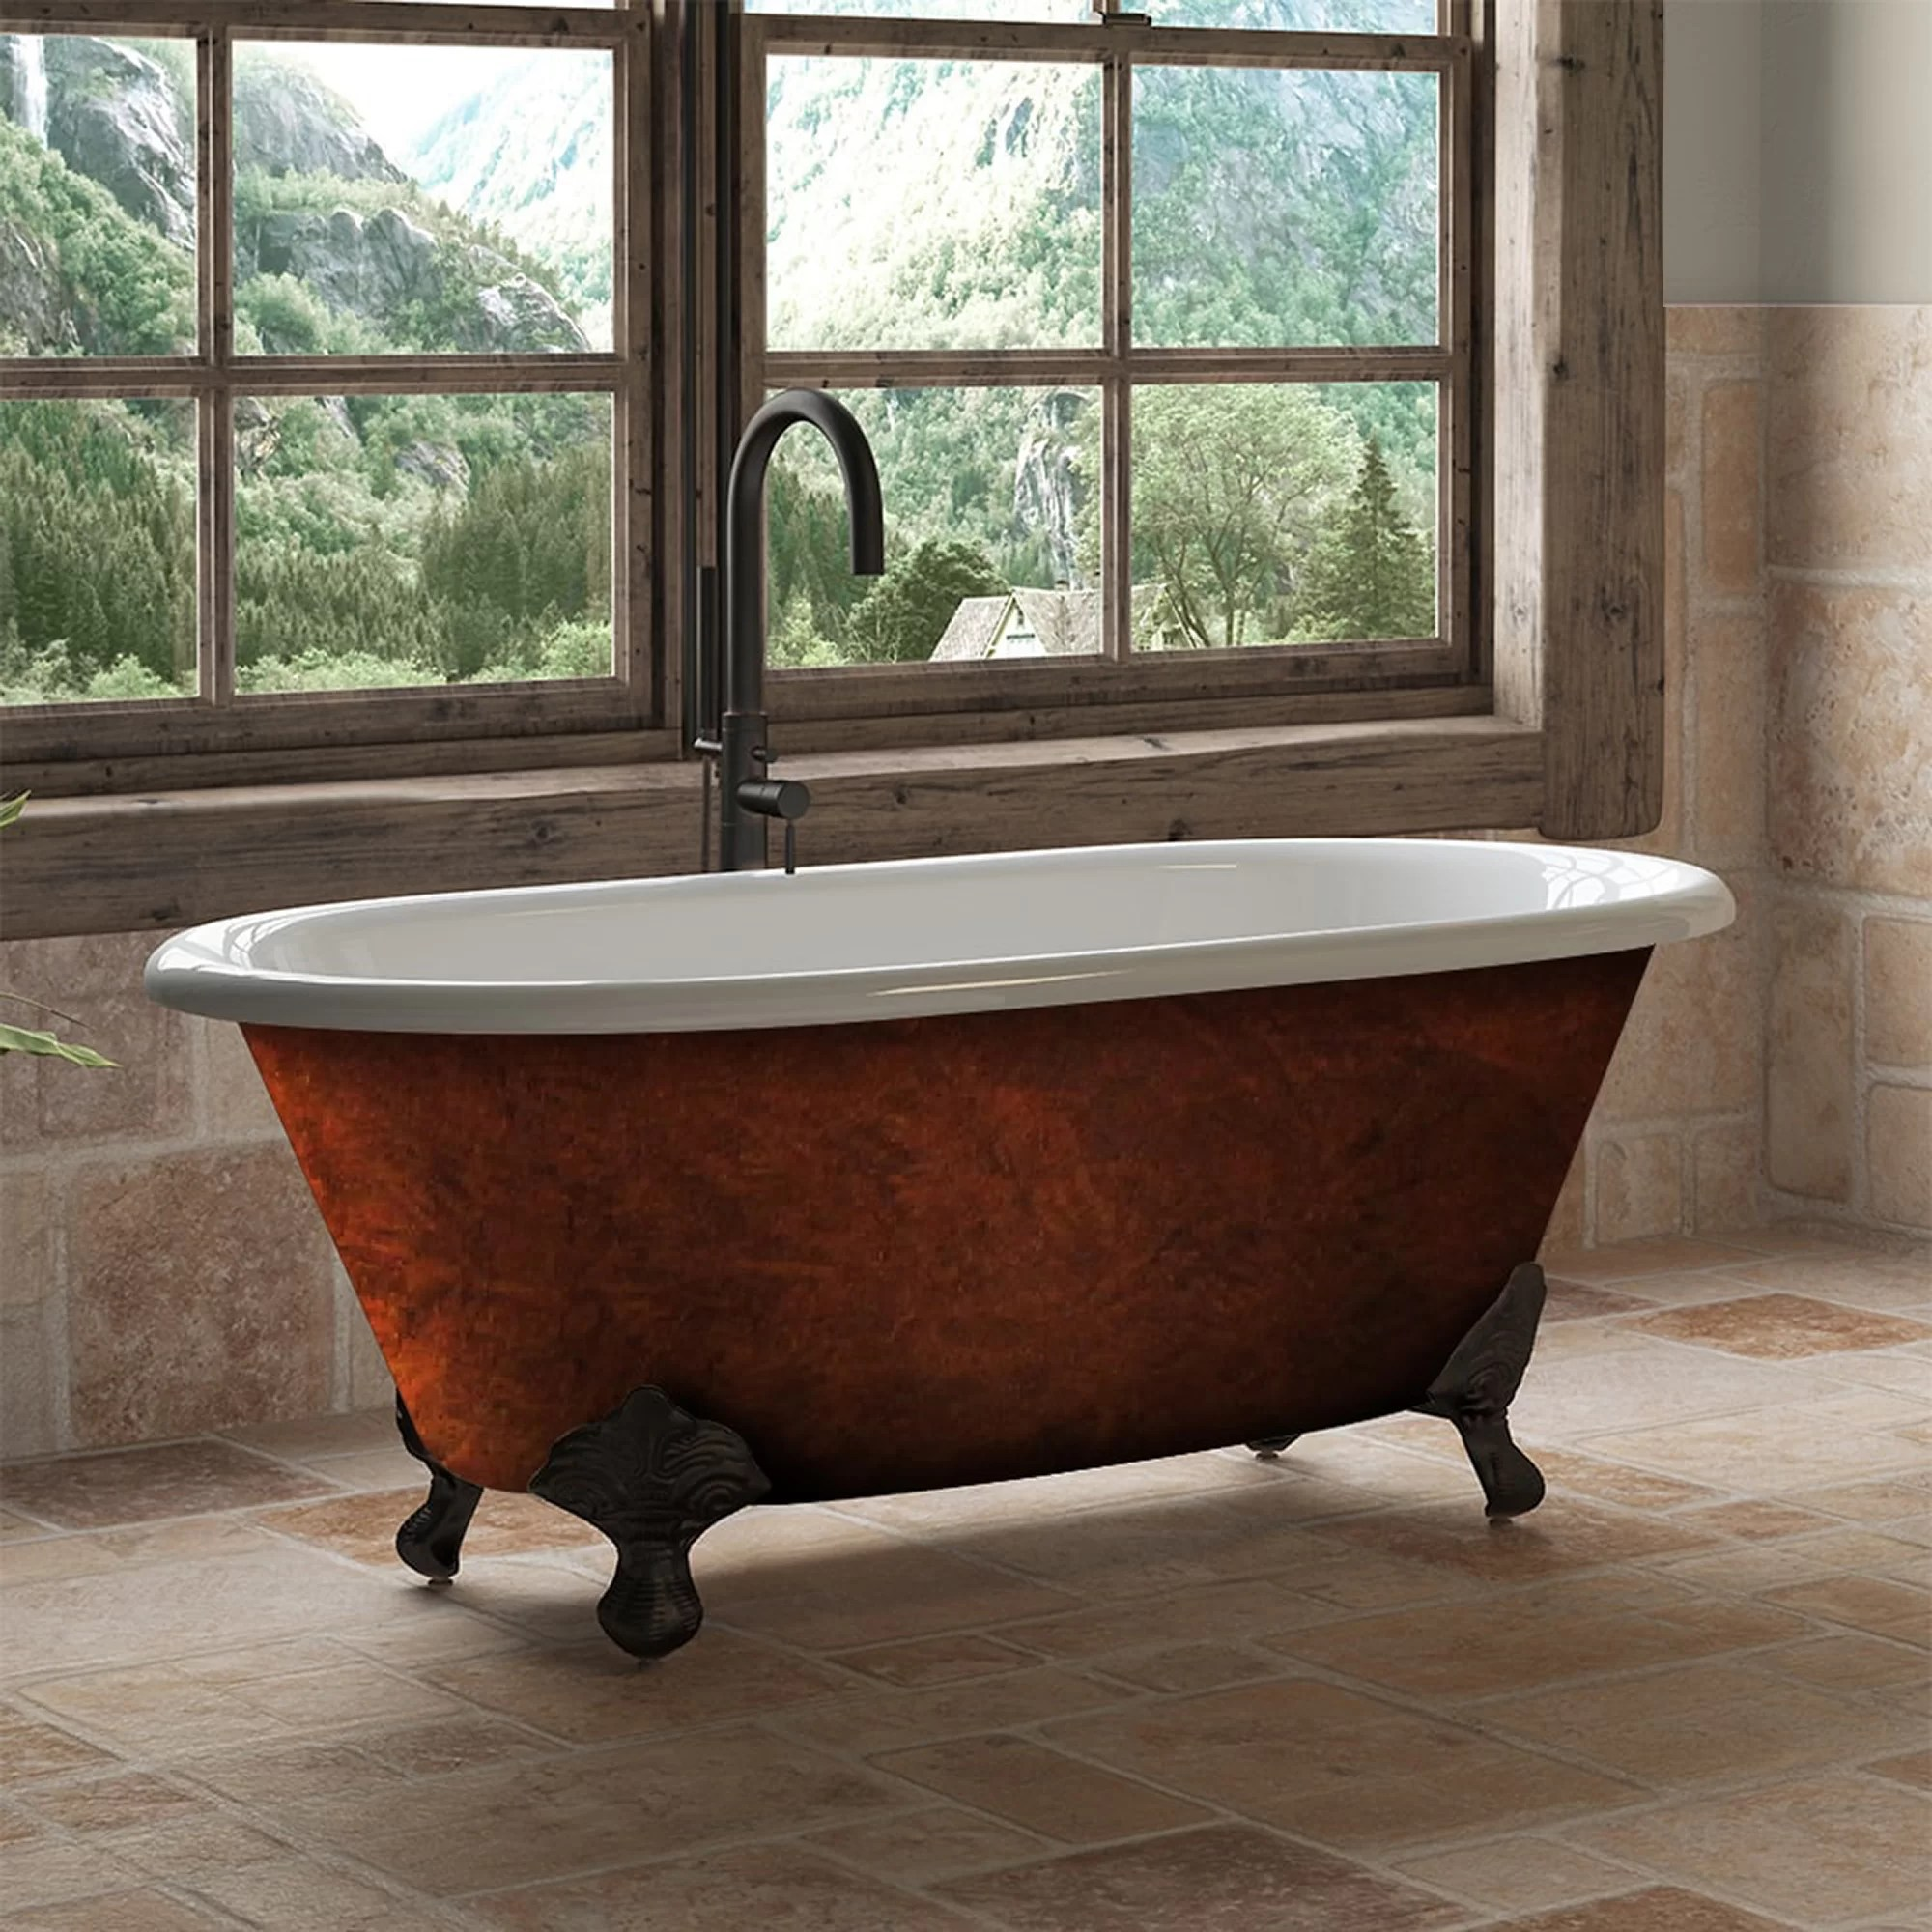 Cast Iron Clawfoot 60 X 30 Freestanding Soaking Bathtub